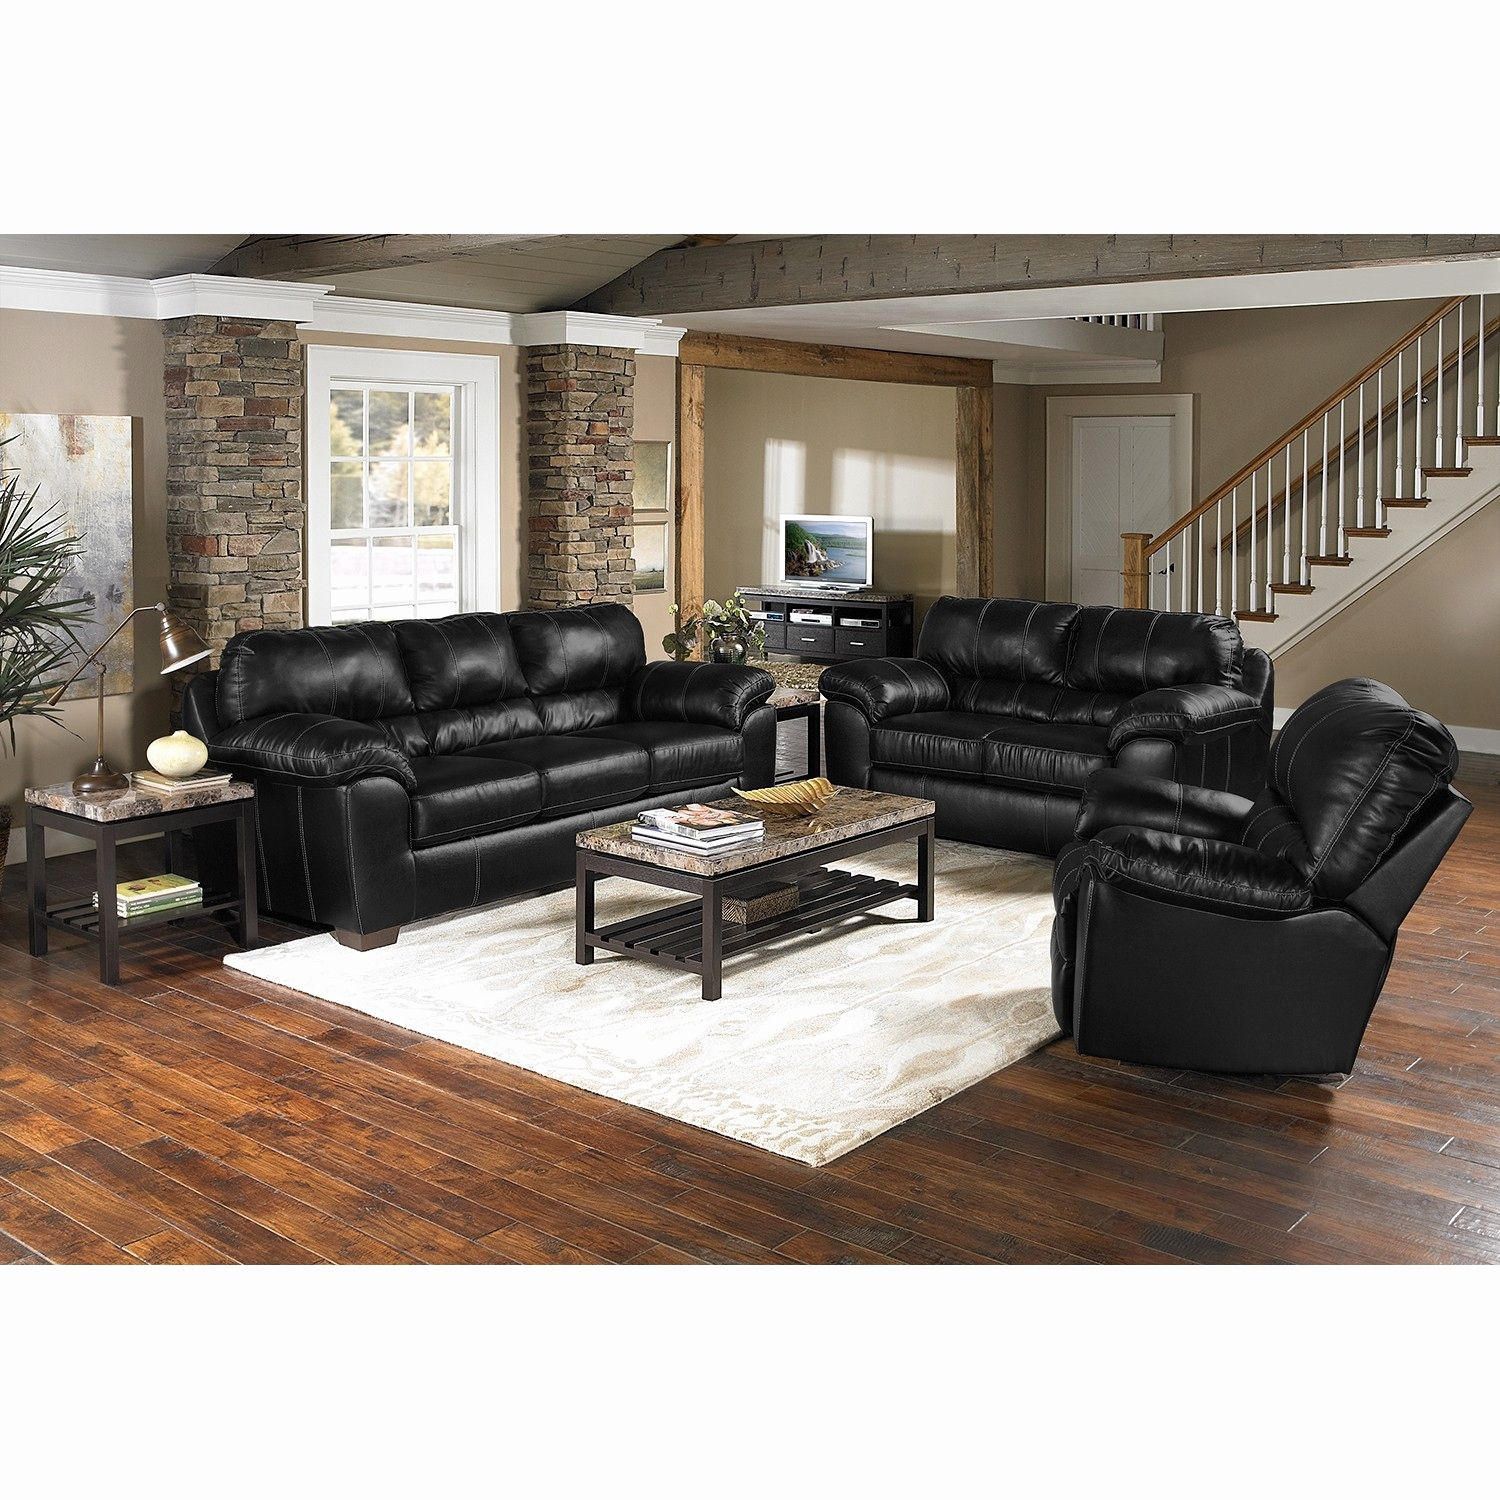 Luxury Best Leather Sofa Brands Graphics Living Room Living Room Furniture Best Sectional Sofa Brands And Best Leather Sofa